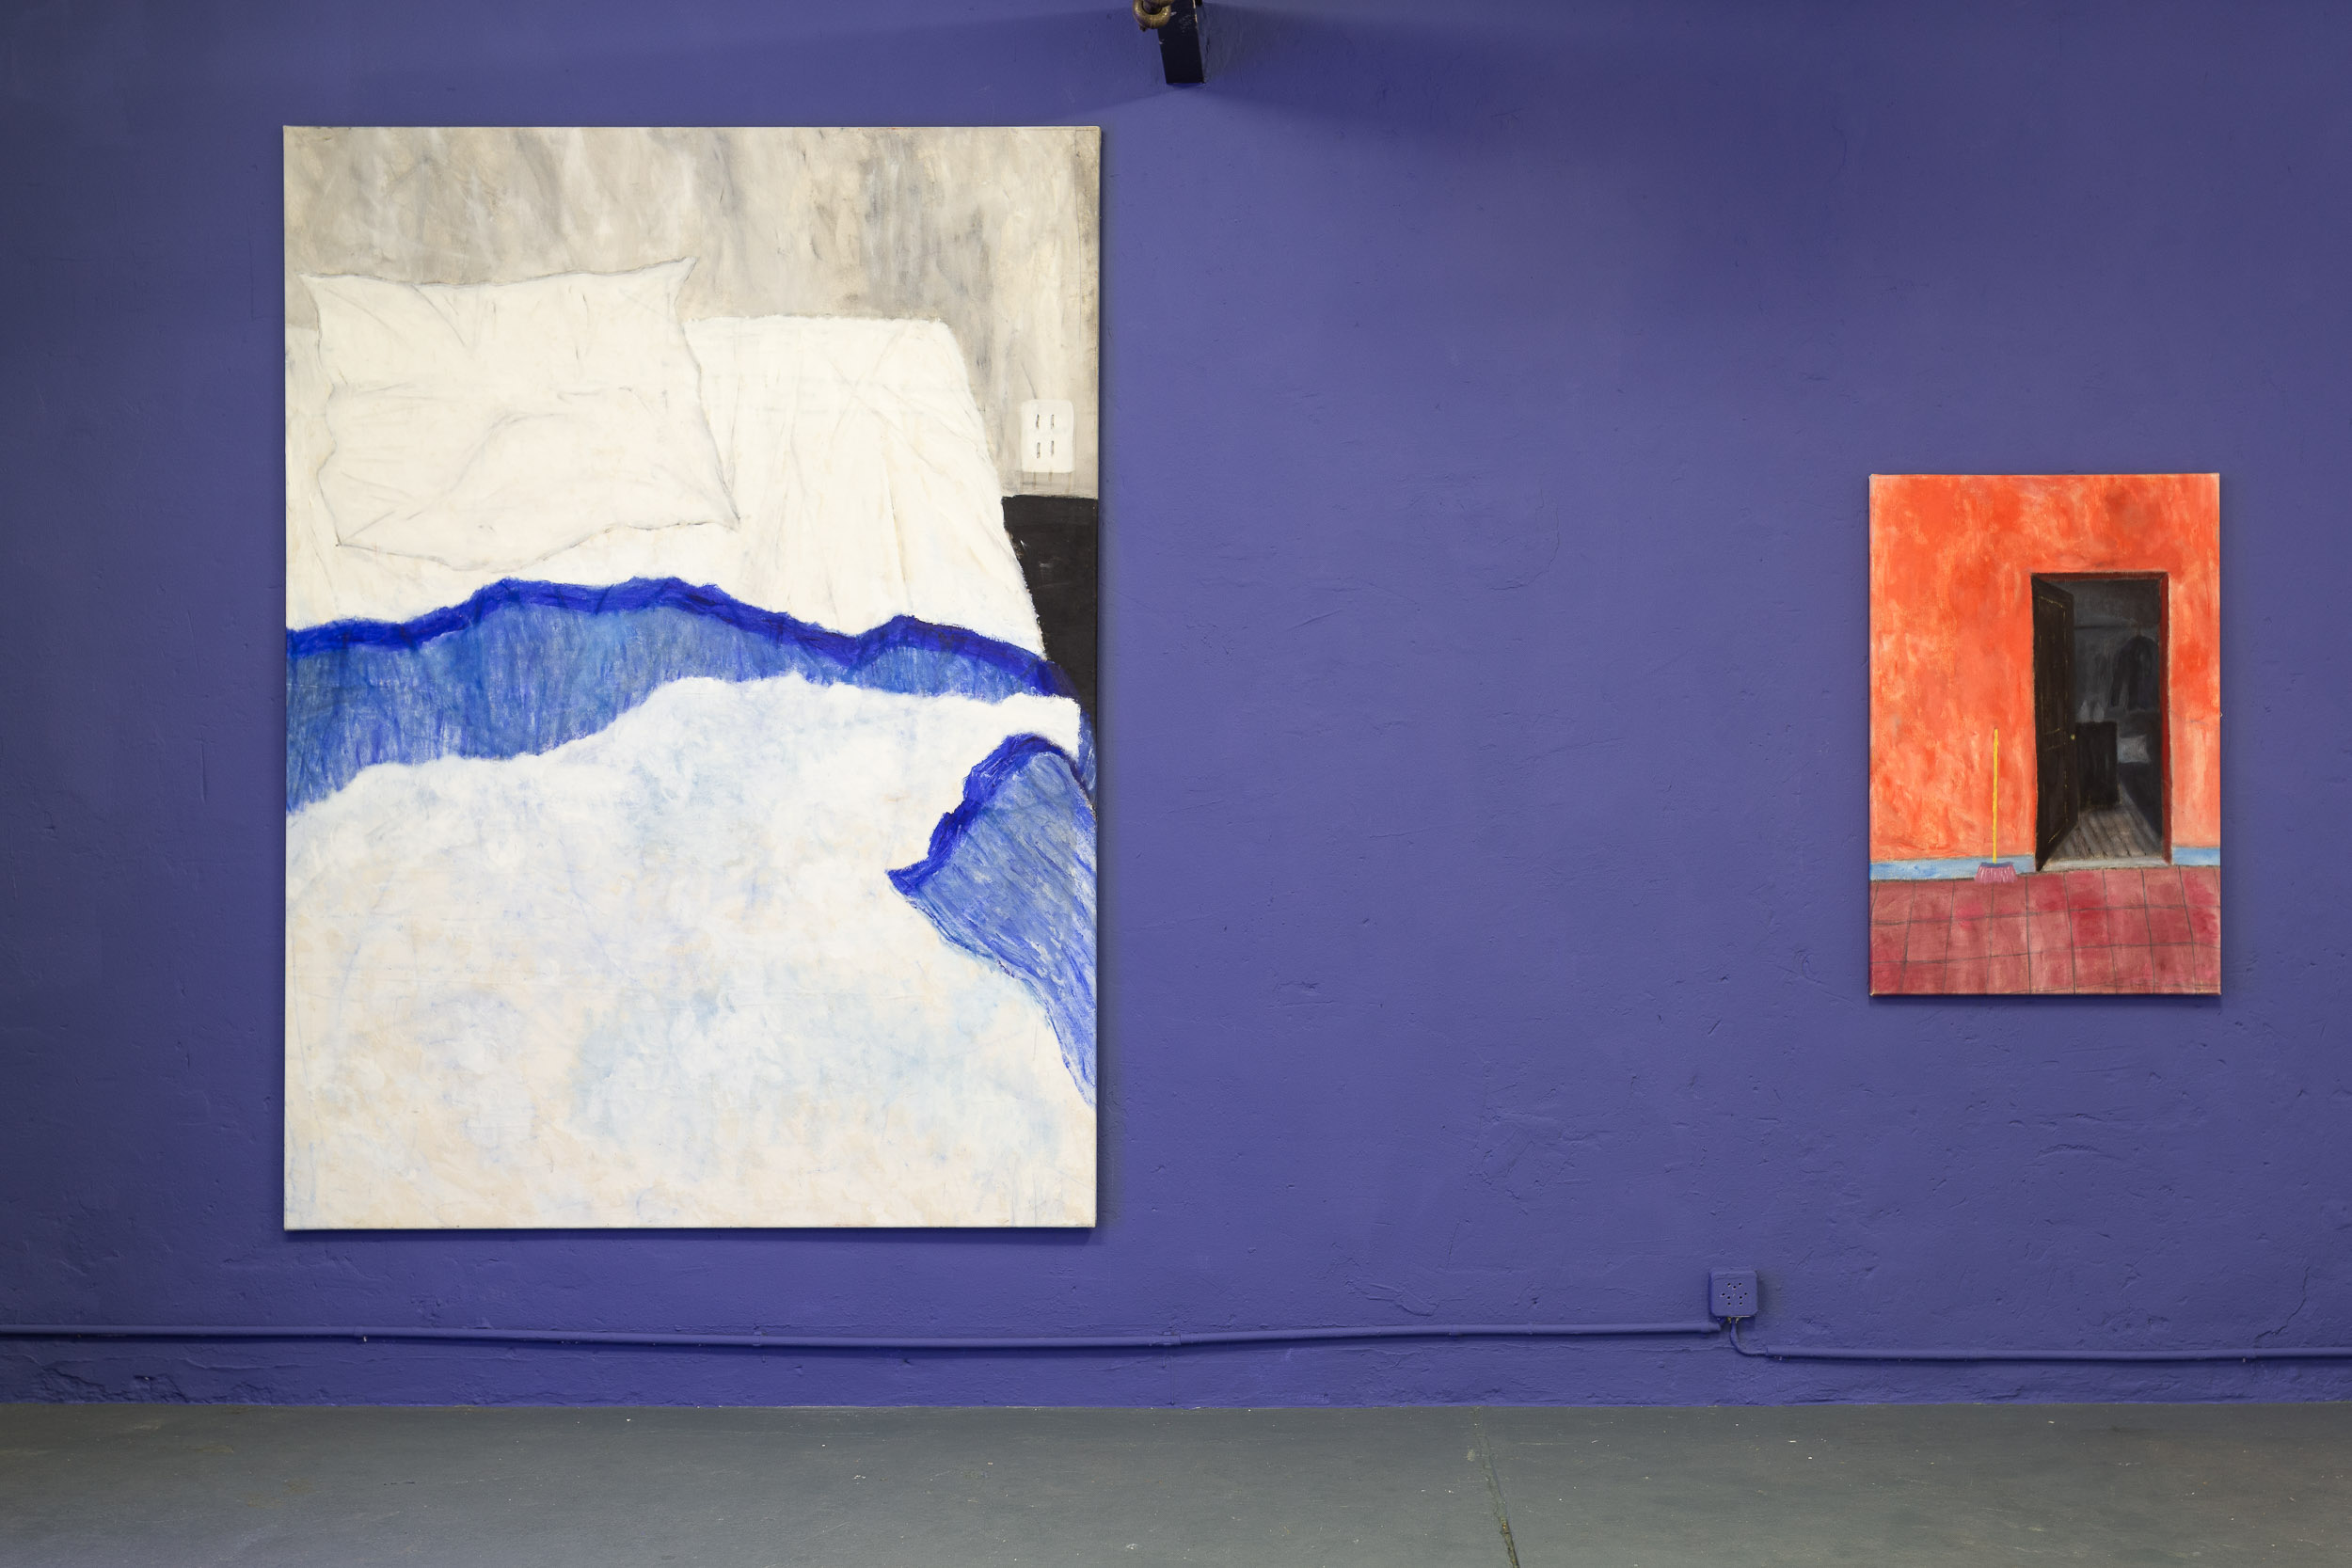 Left: Dieter Hall,  Ample make this bed,  1991, Oil on canvas, 190 x 140 cm Right: Dieter Hall,  Mexican Hallway,  2002, Oil on canvas, 90 x 60 cm  Photo: Kilian Bannwart